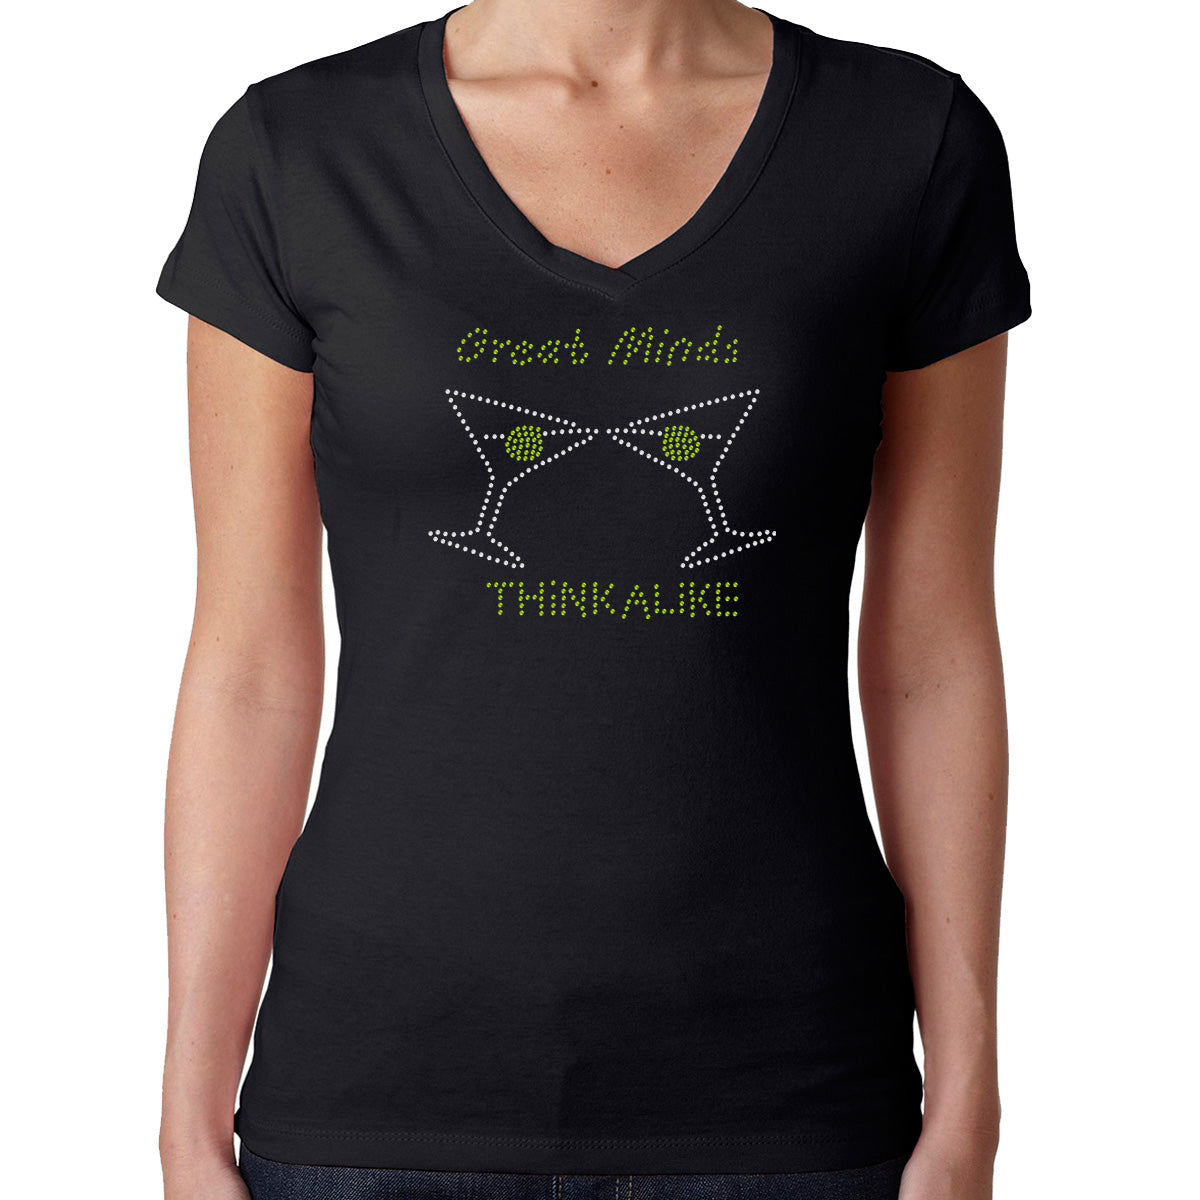 Womens T-Shirt Rhinestone Bling Black Fitted Tee Martini Great Minds Think Alike